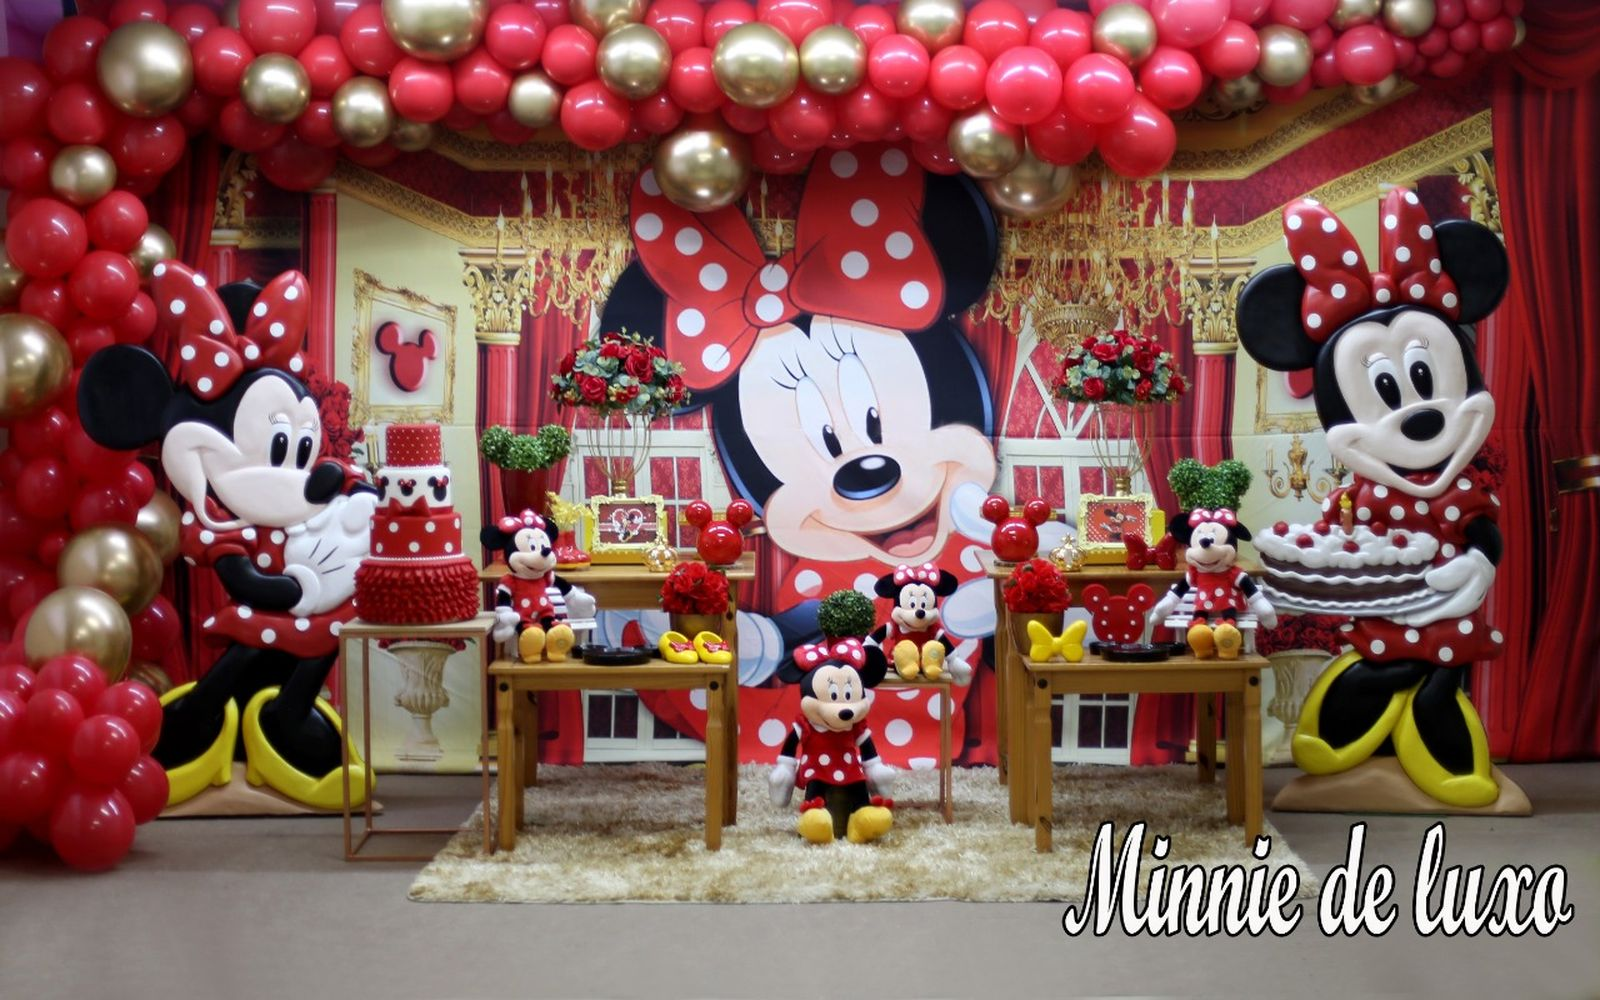 Minnie Luxo